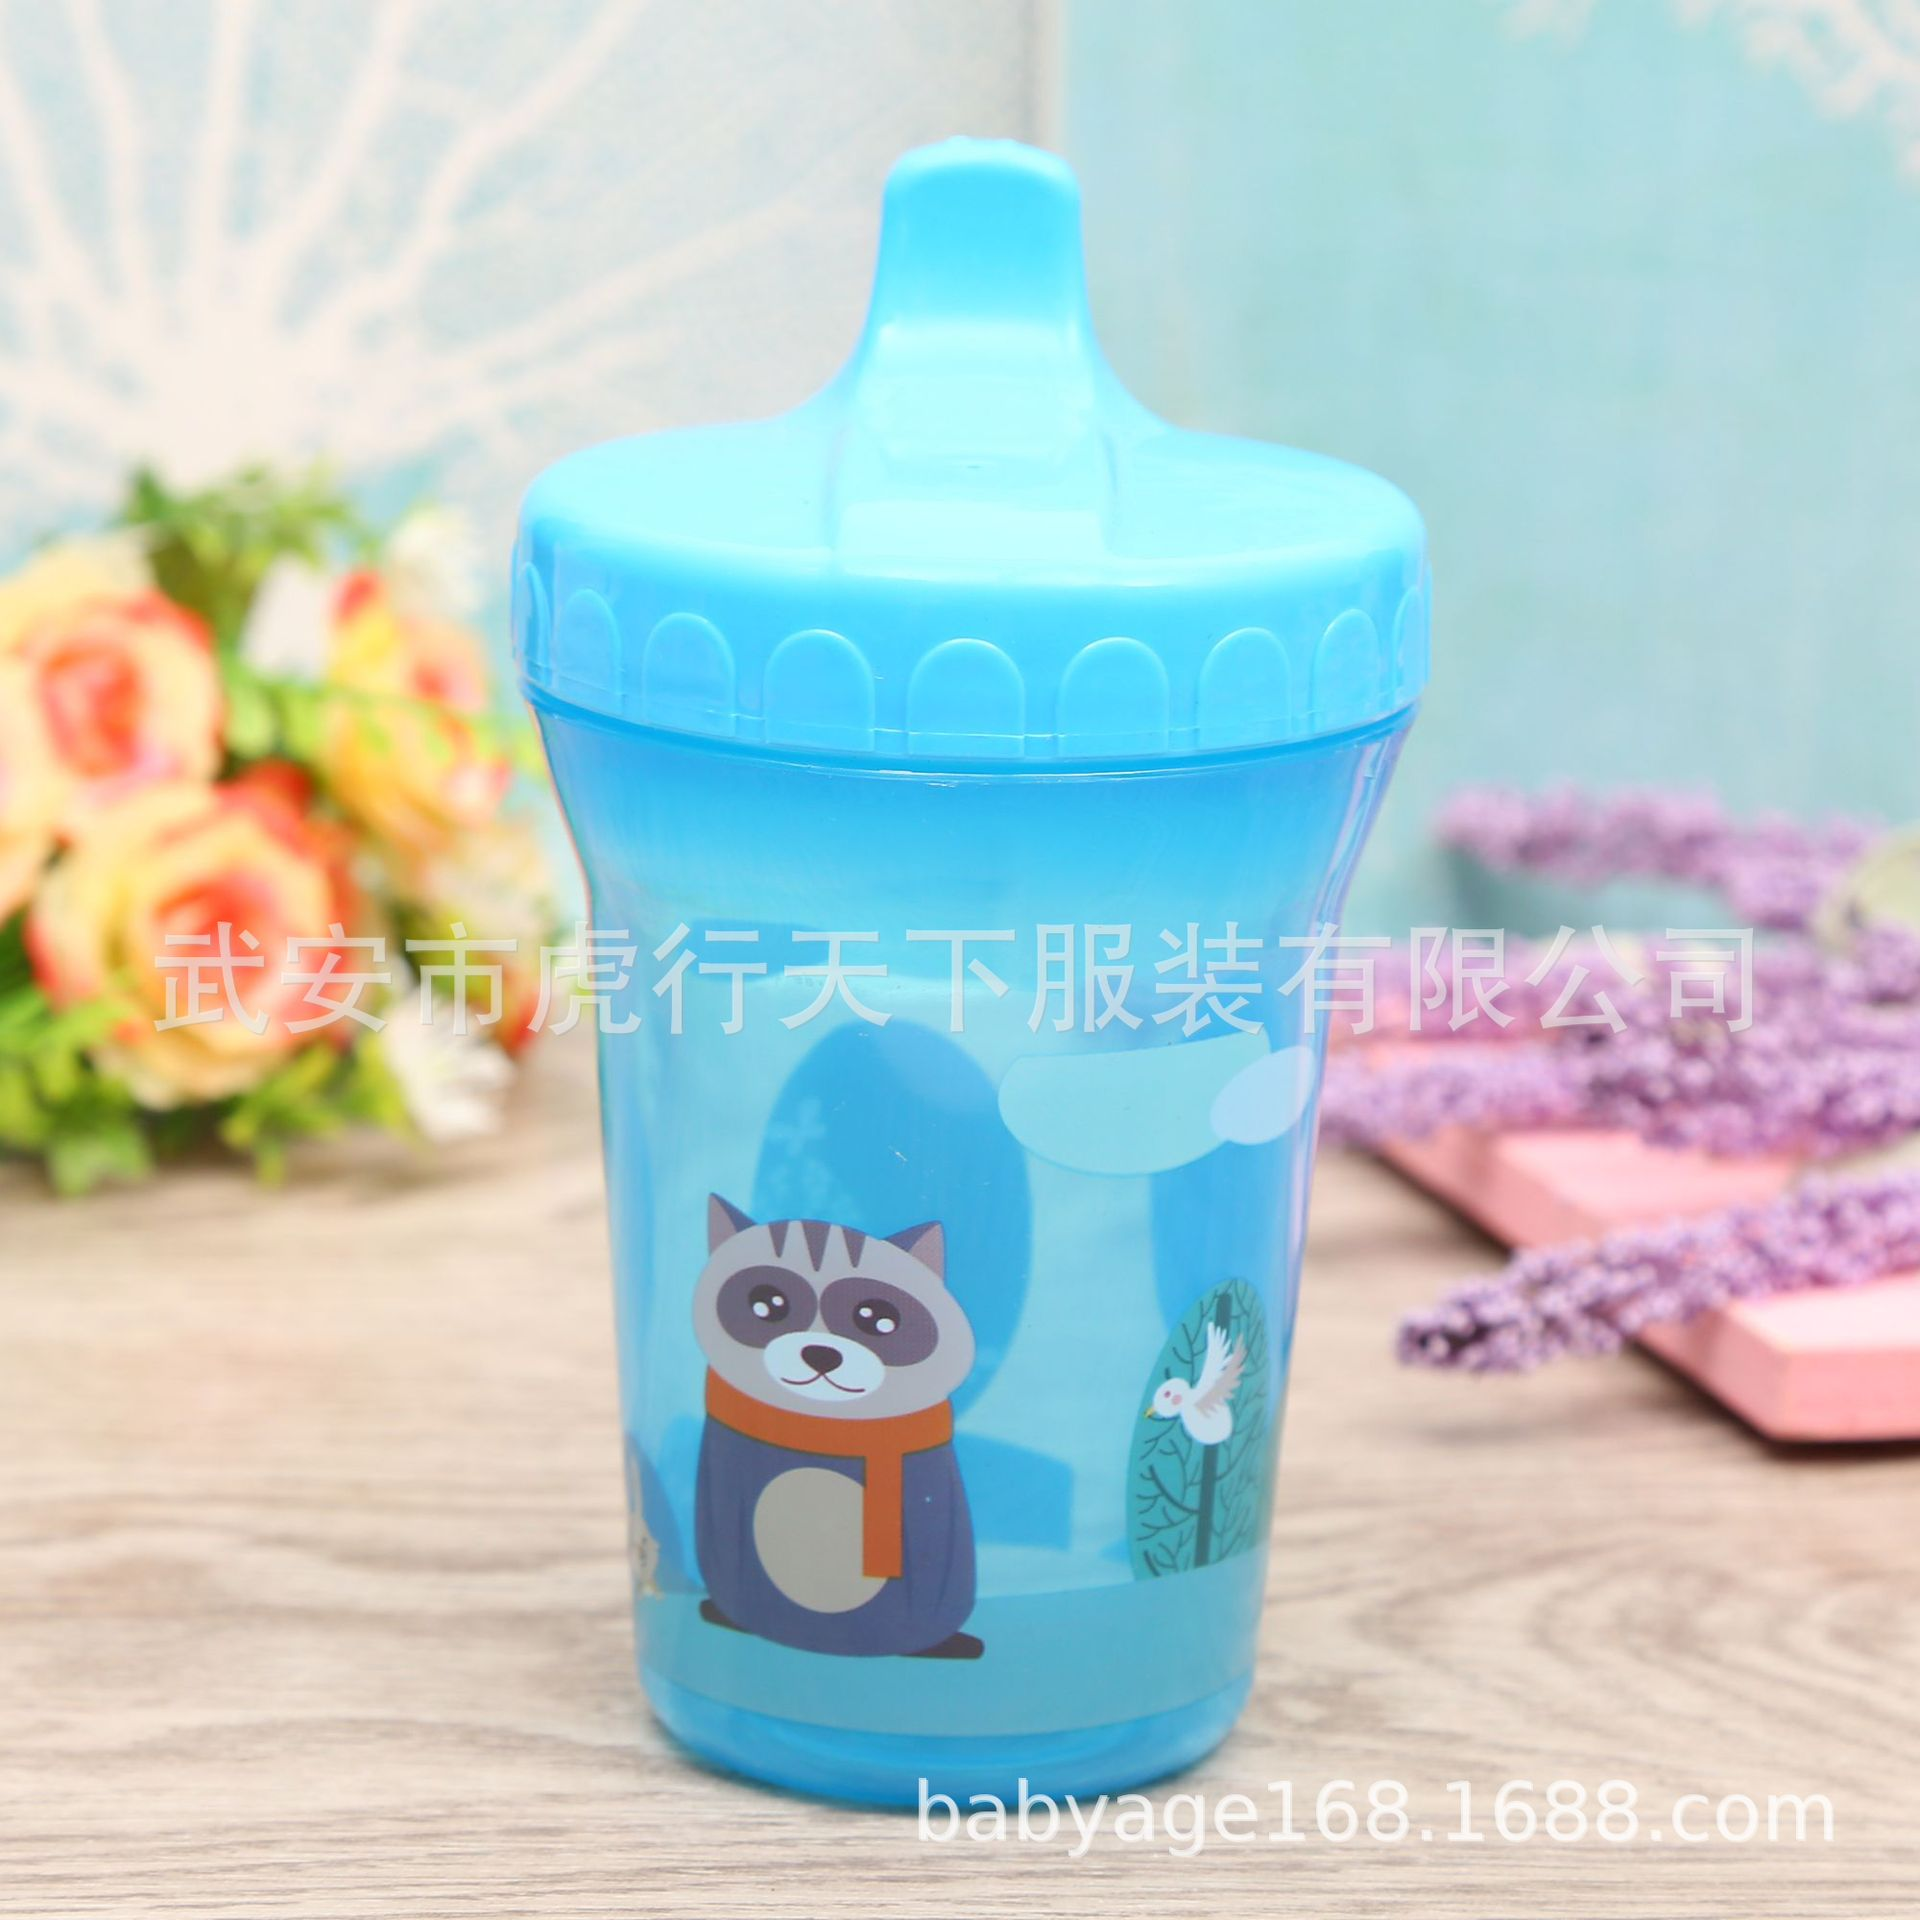 200ml Ali Bunny Straight-Cut New Style Infant Sippy Cup Baby Training Drinking Cup